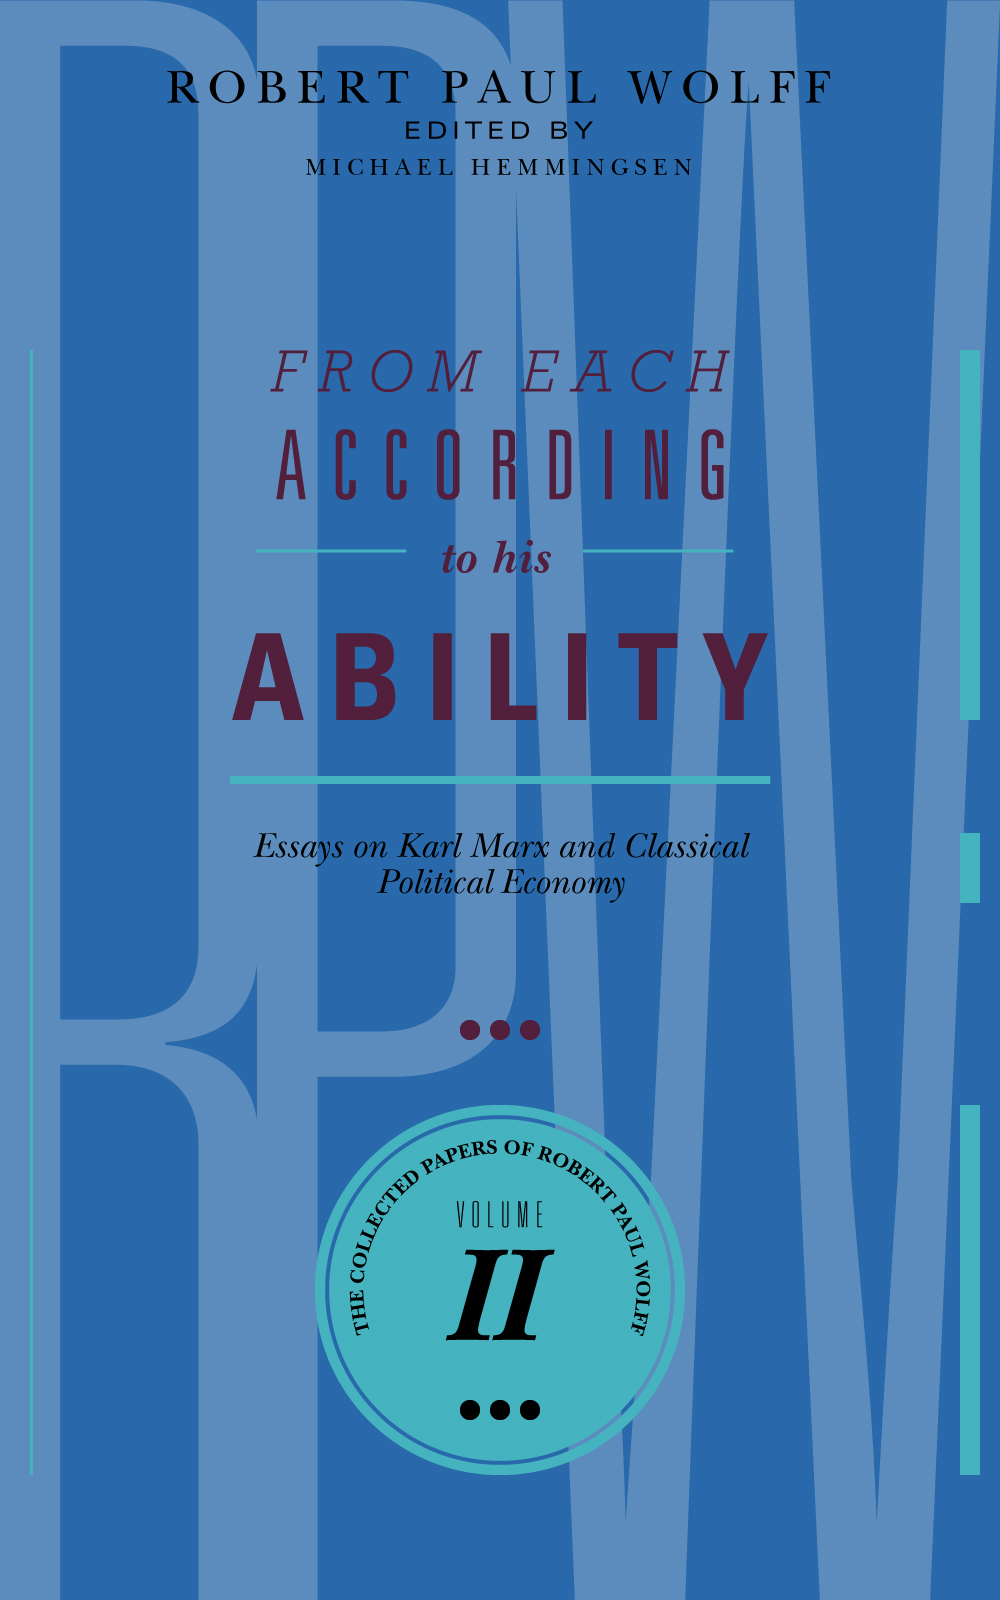 Robert Paul Wolff - From Each According To His Ability